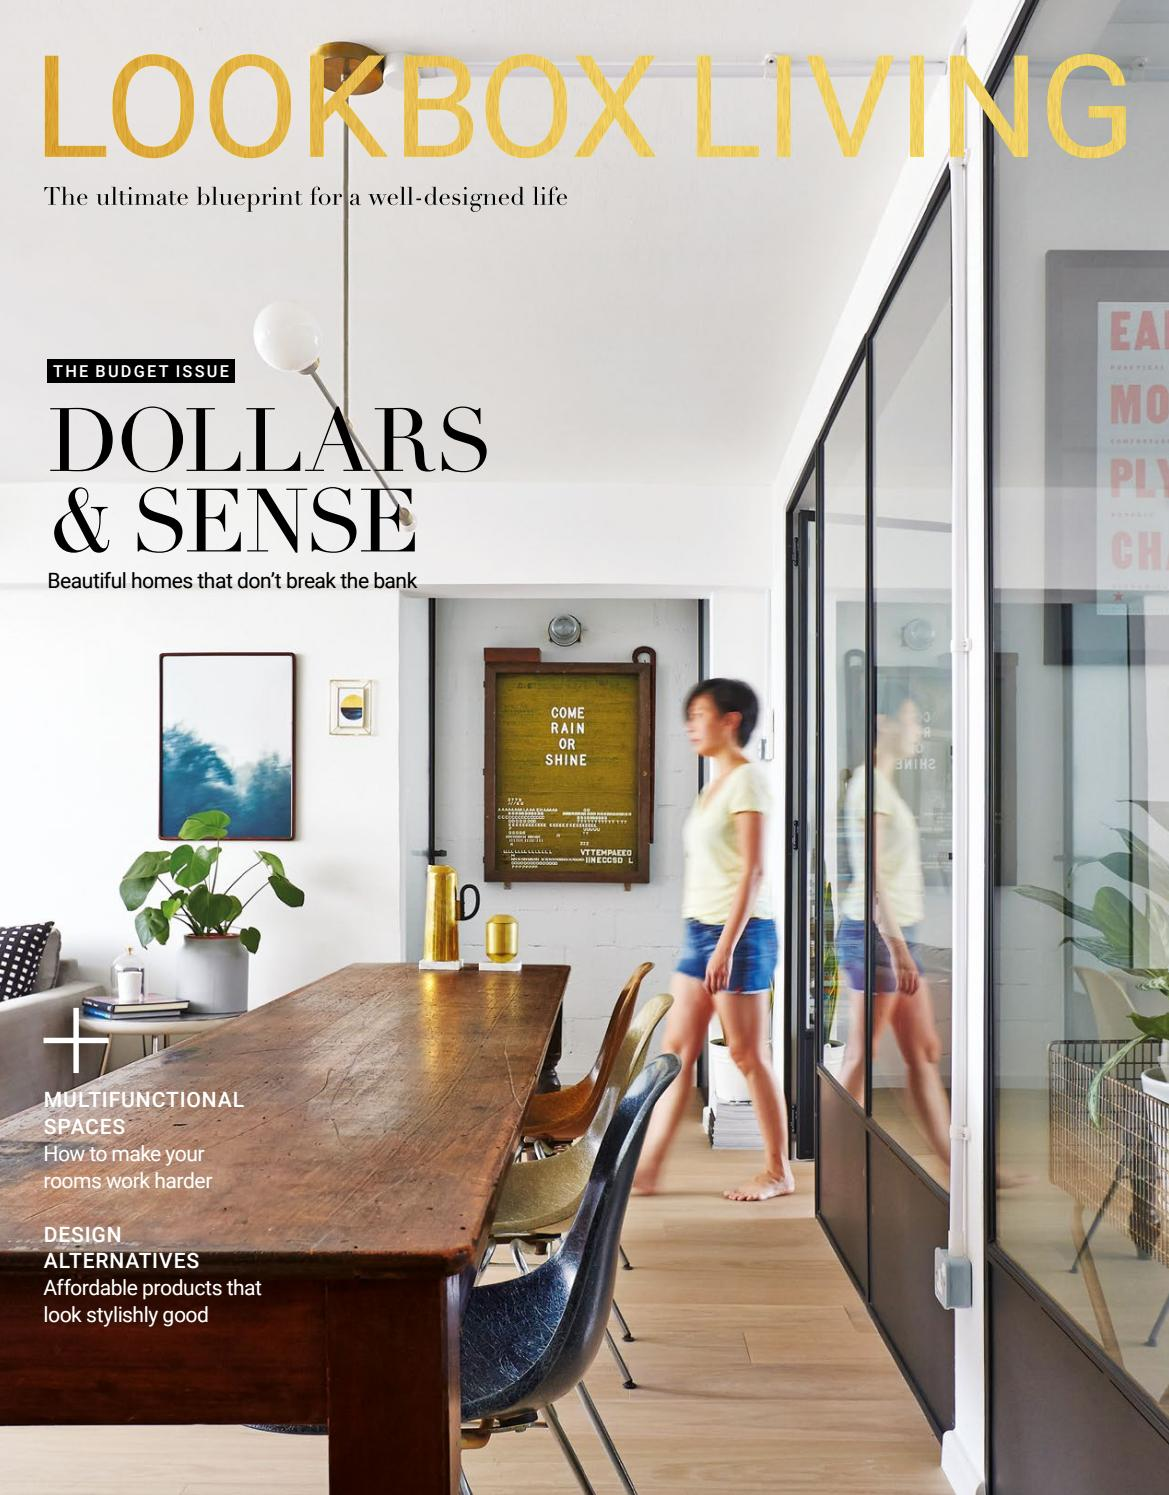 Lookbox Living Issue 52 by Indesign Media Asia Pacific - issuu